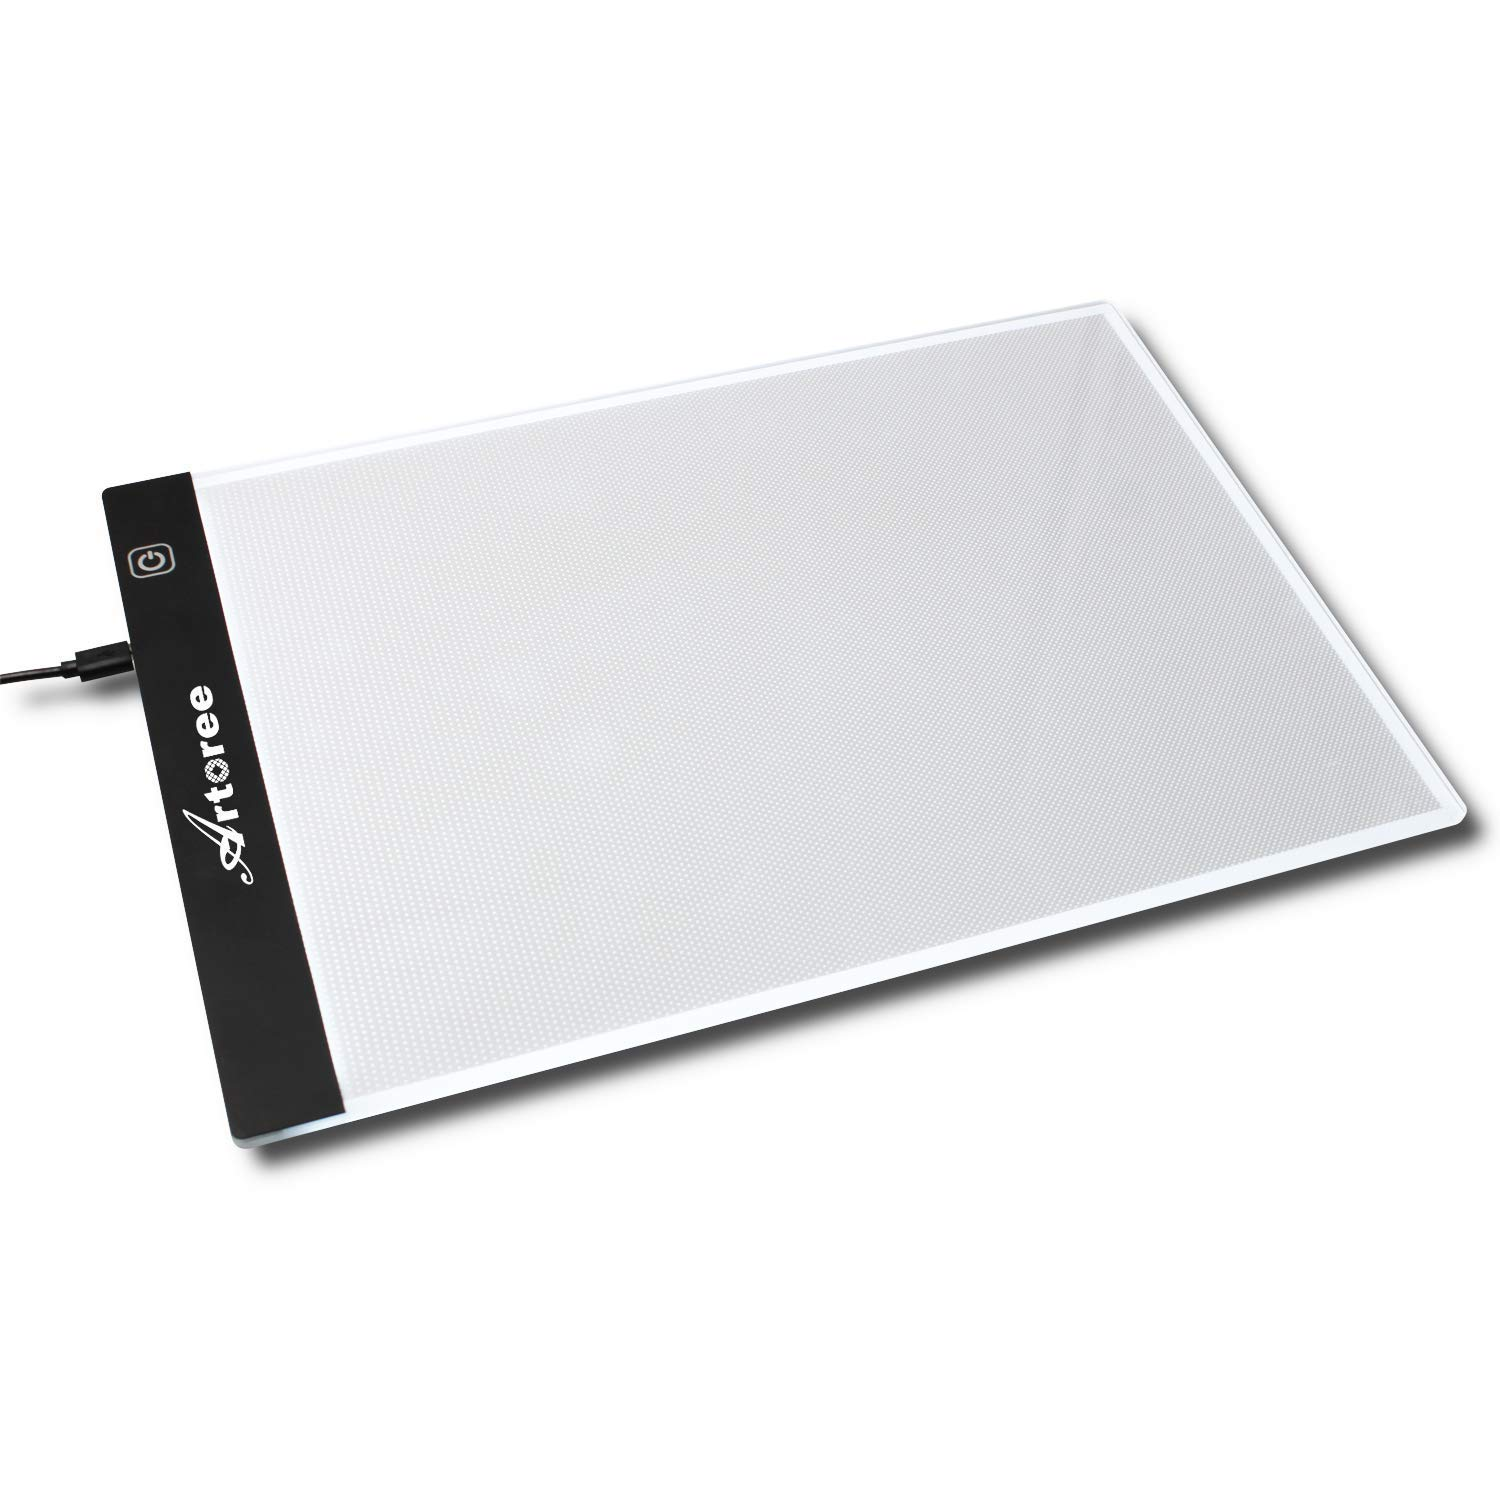 Cheap for all in-house products a4 led board in FULL HOME